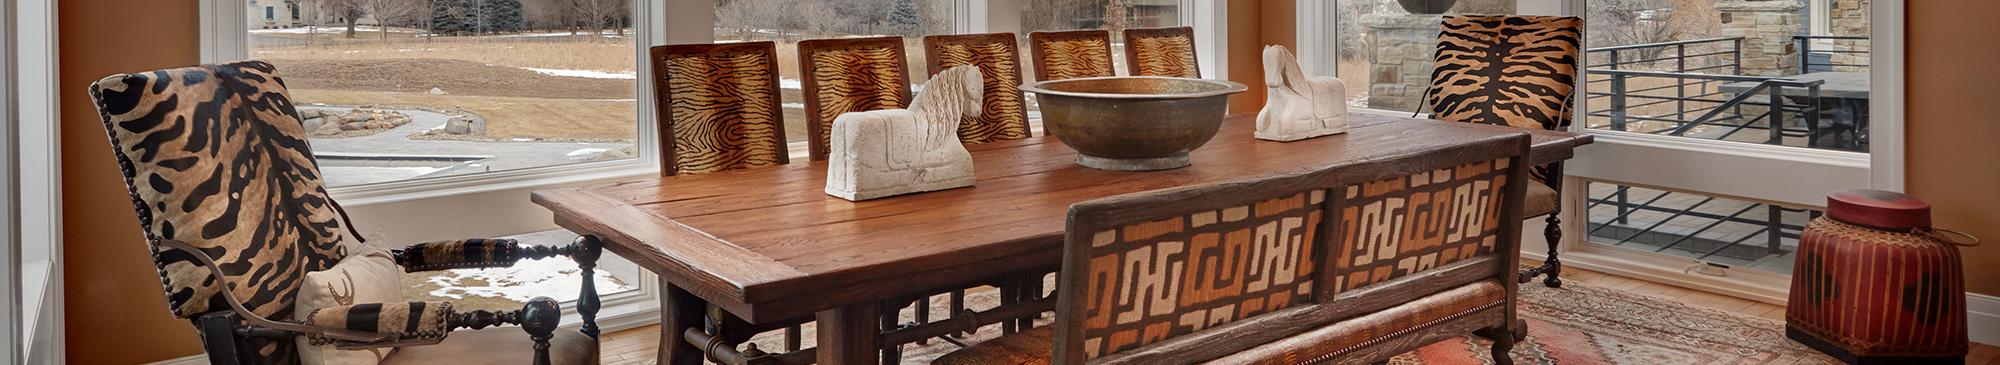 A large wooden dining room table with animal print chairs